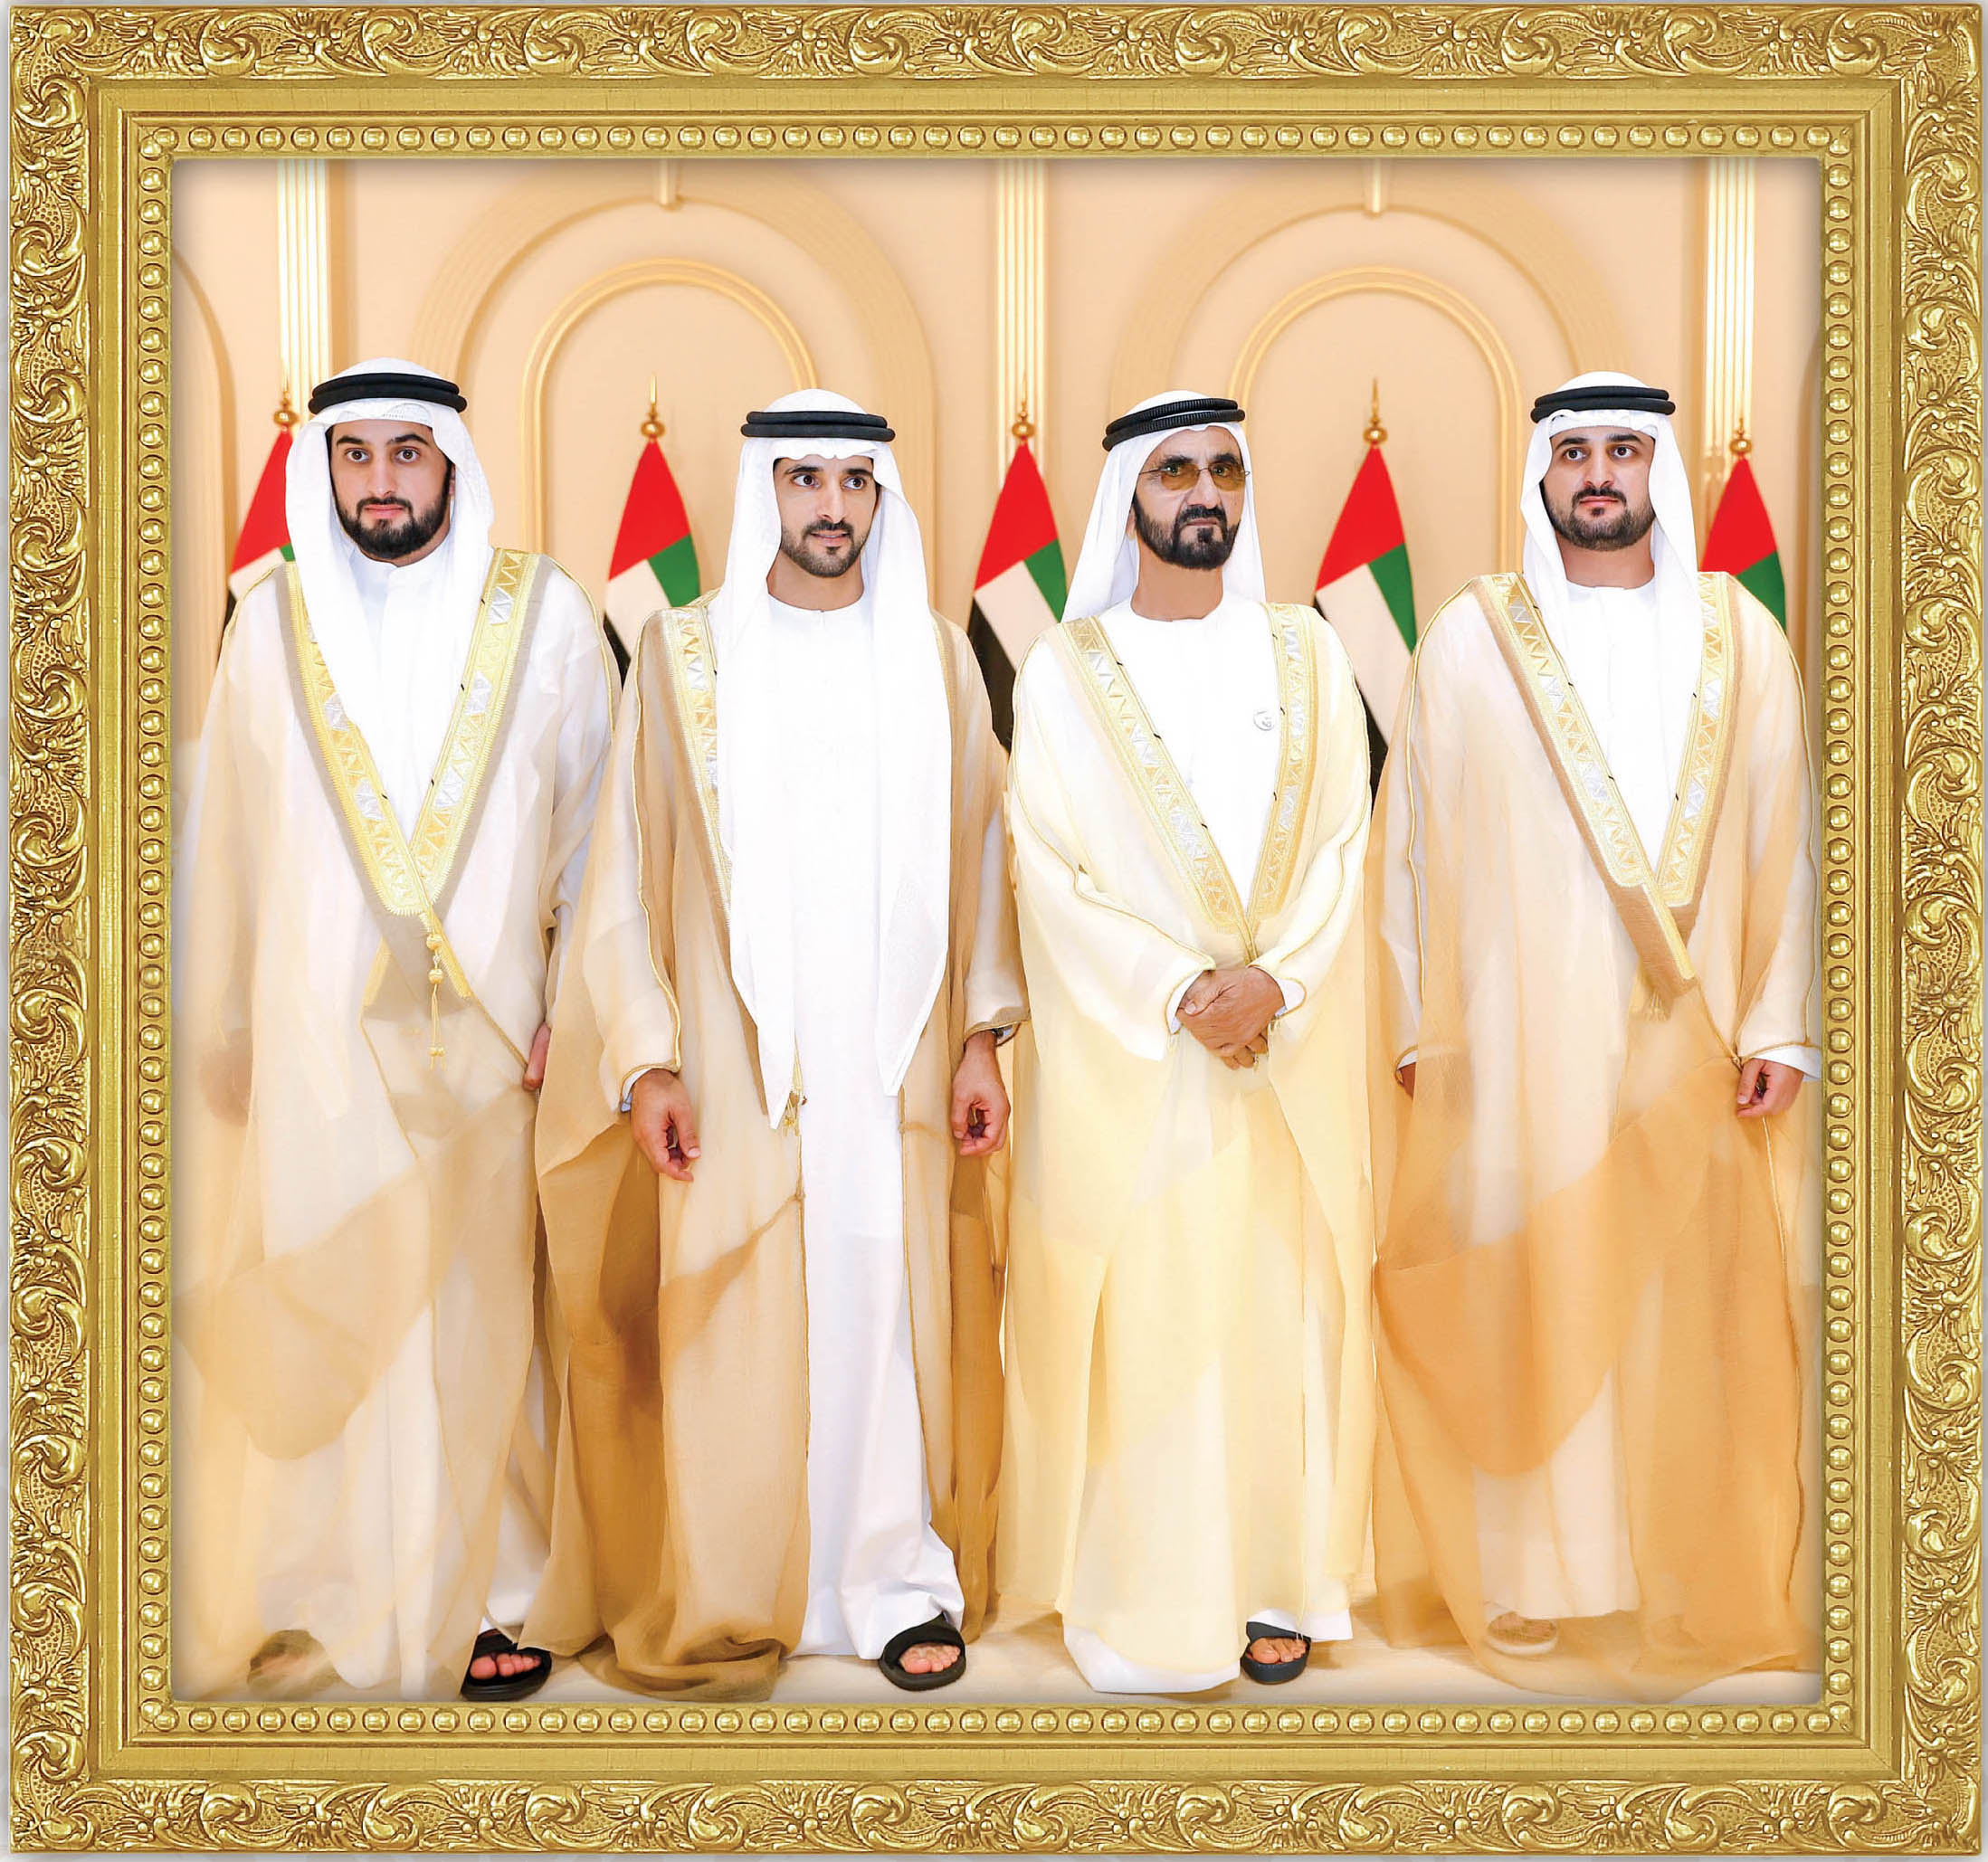 Mohammed Bin Rashid Receives The Congratulations Of Mohammed Bin Zayed And The Emirates Of The Emirates As Well As The Wedding Of His Children